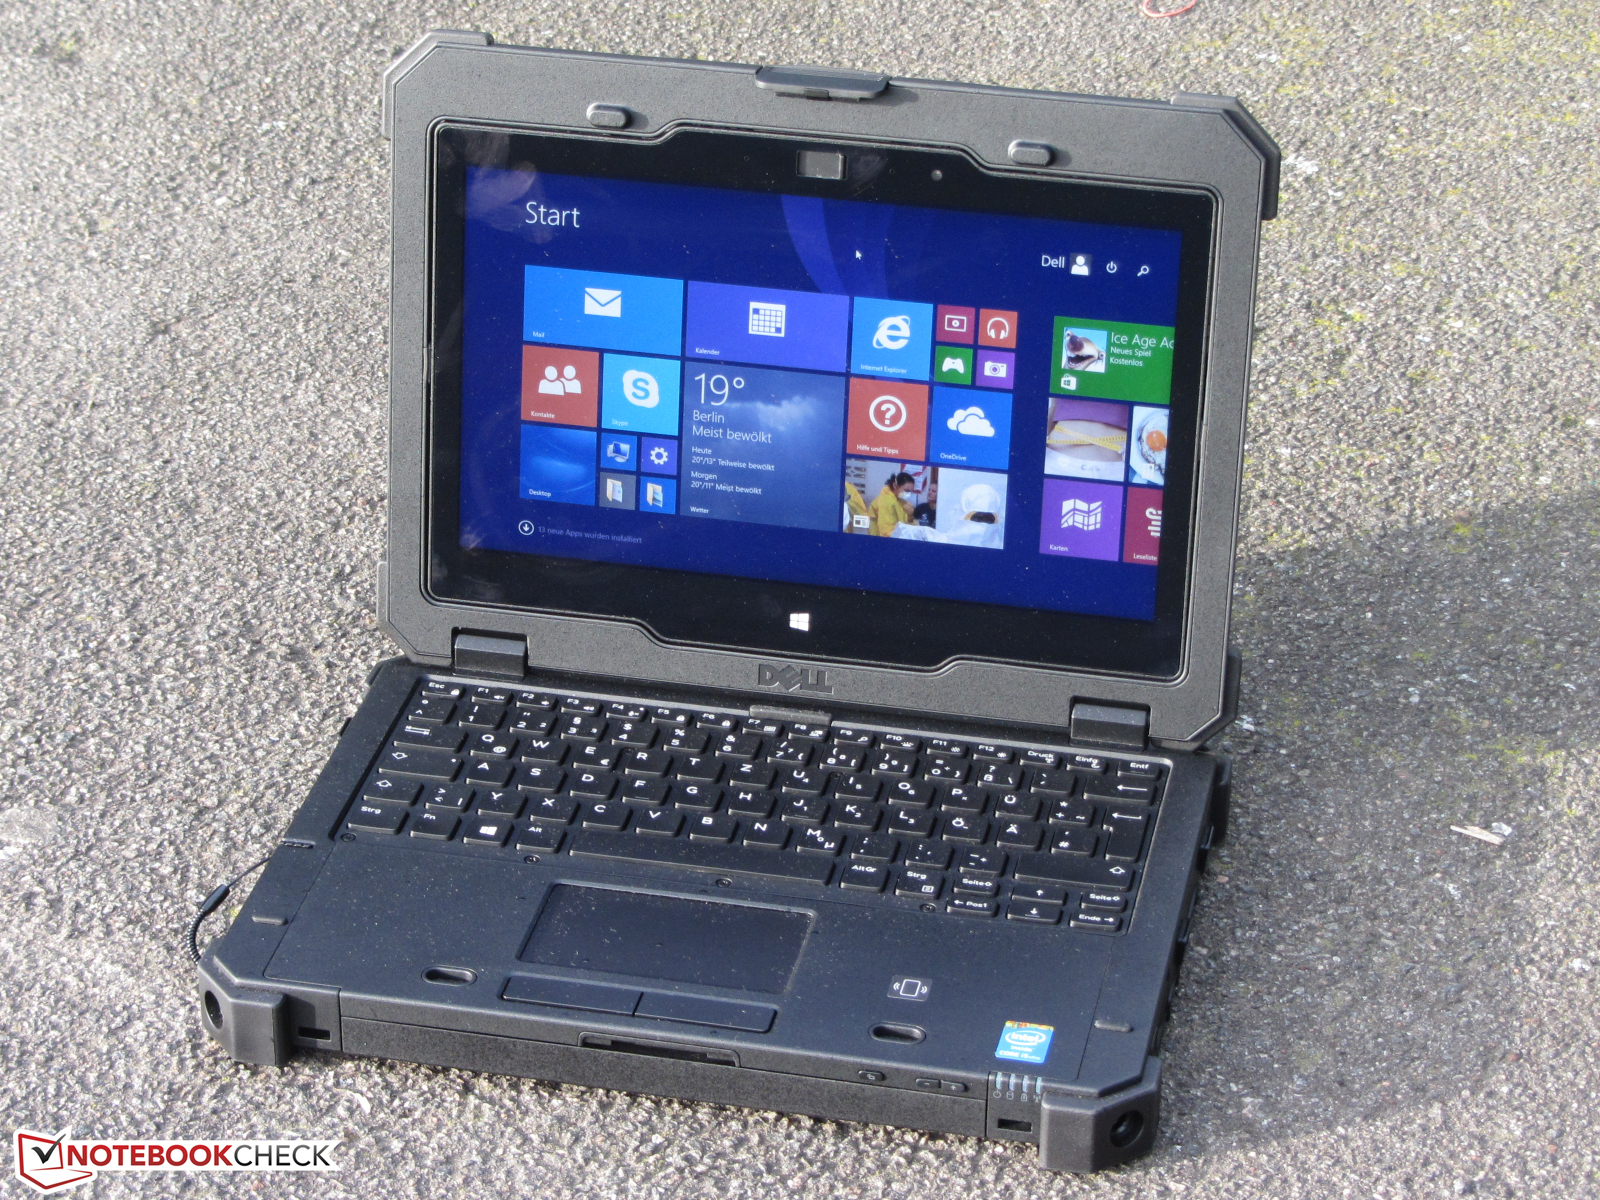 Dell Latitude 12 Rugged Extreme Notebookcheck Org